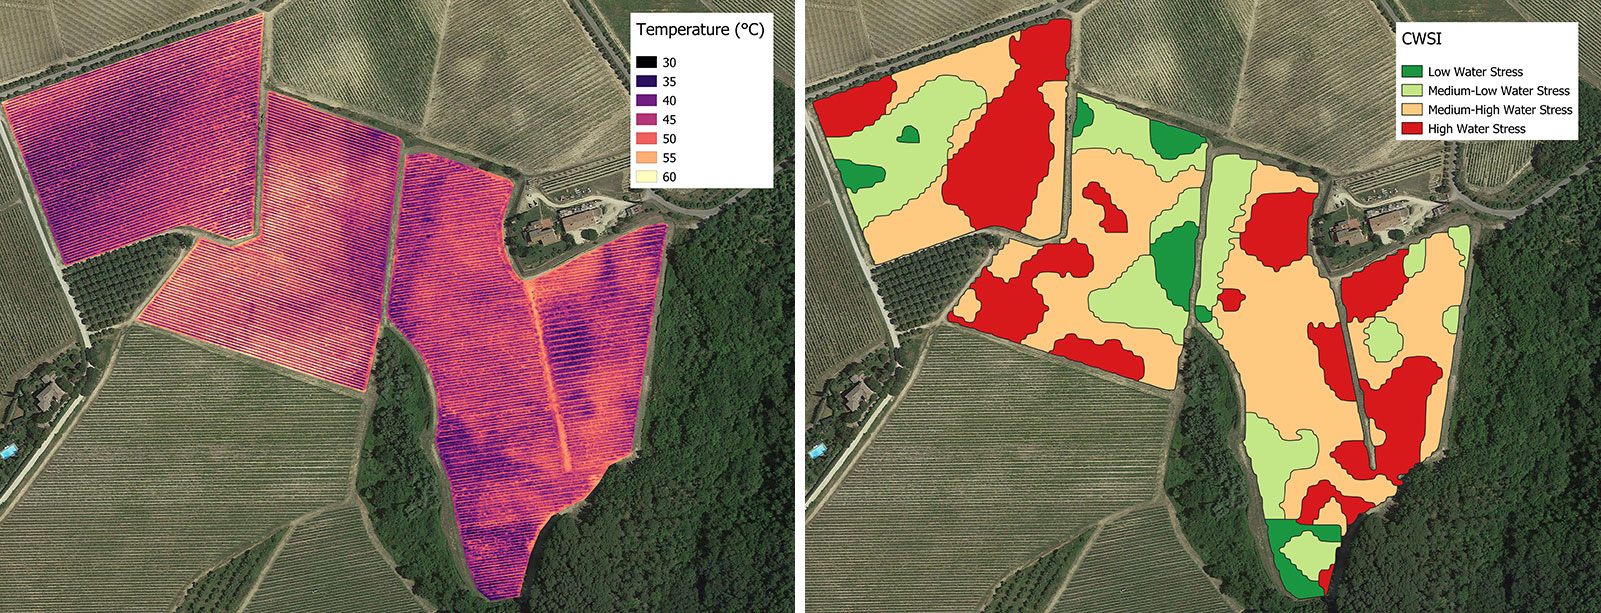 Full vineyard temperature map (°C), vineyard CWSI map in 4 water stress classes